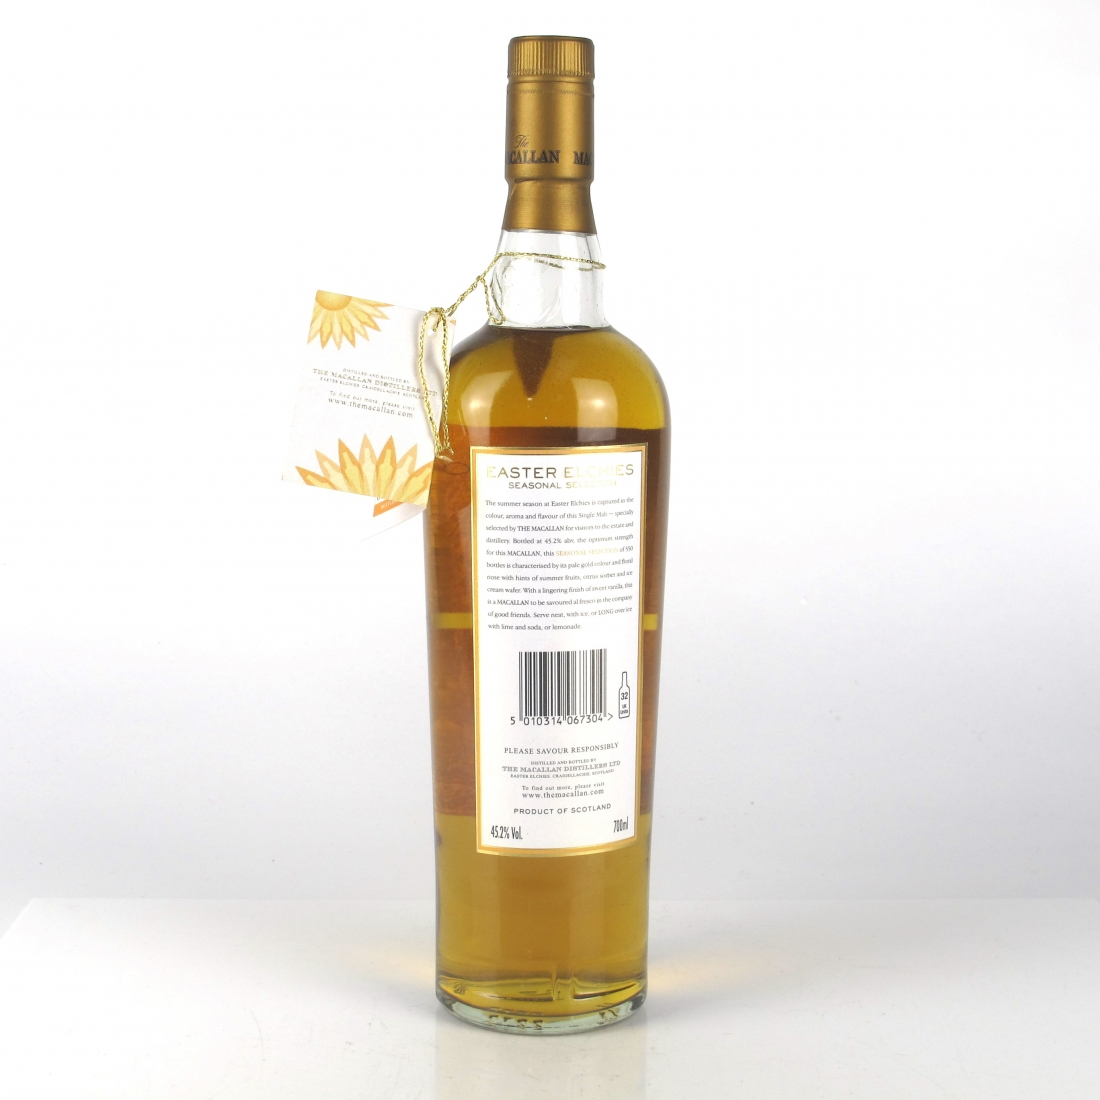 Macallan 8 Year Old Easter Elchies Seasonal Selection